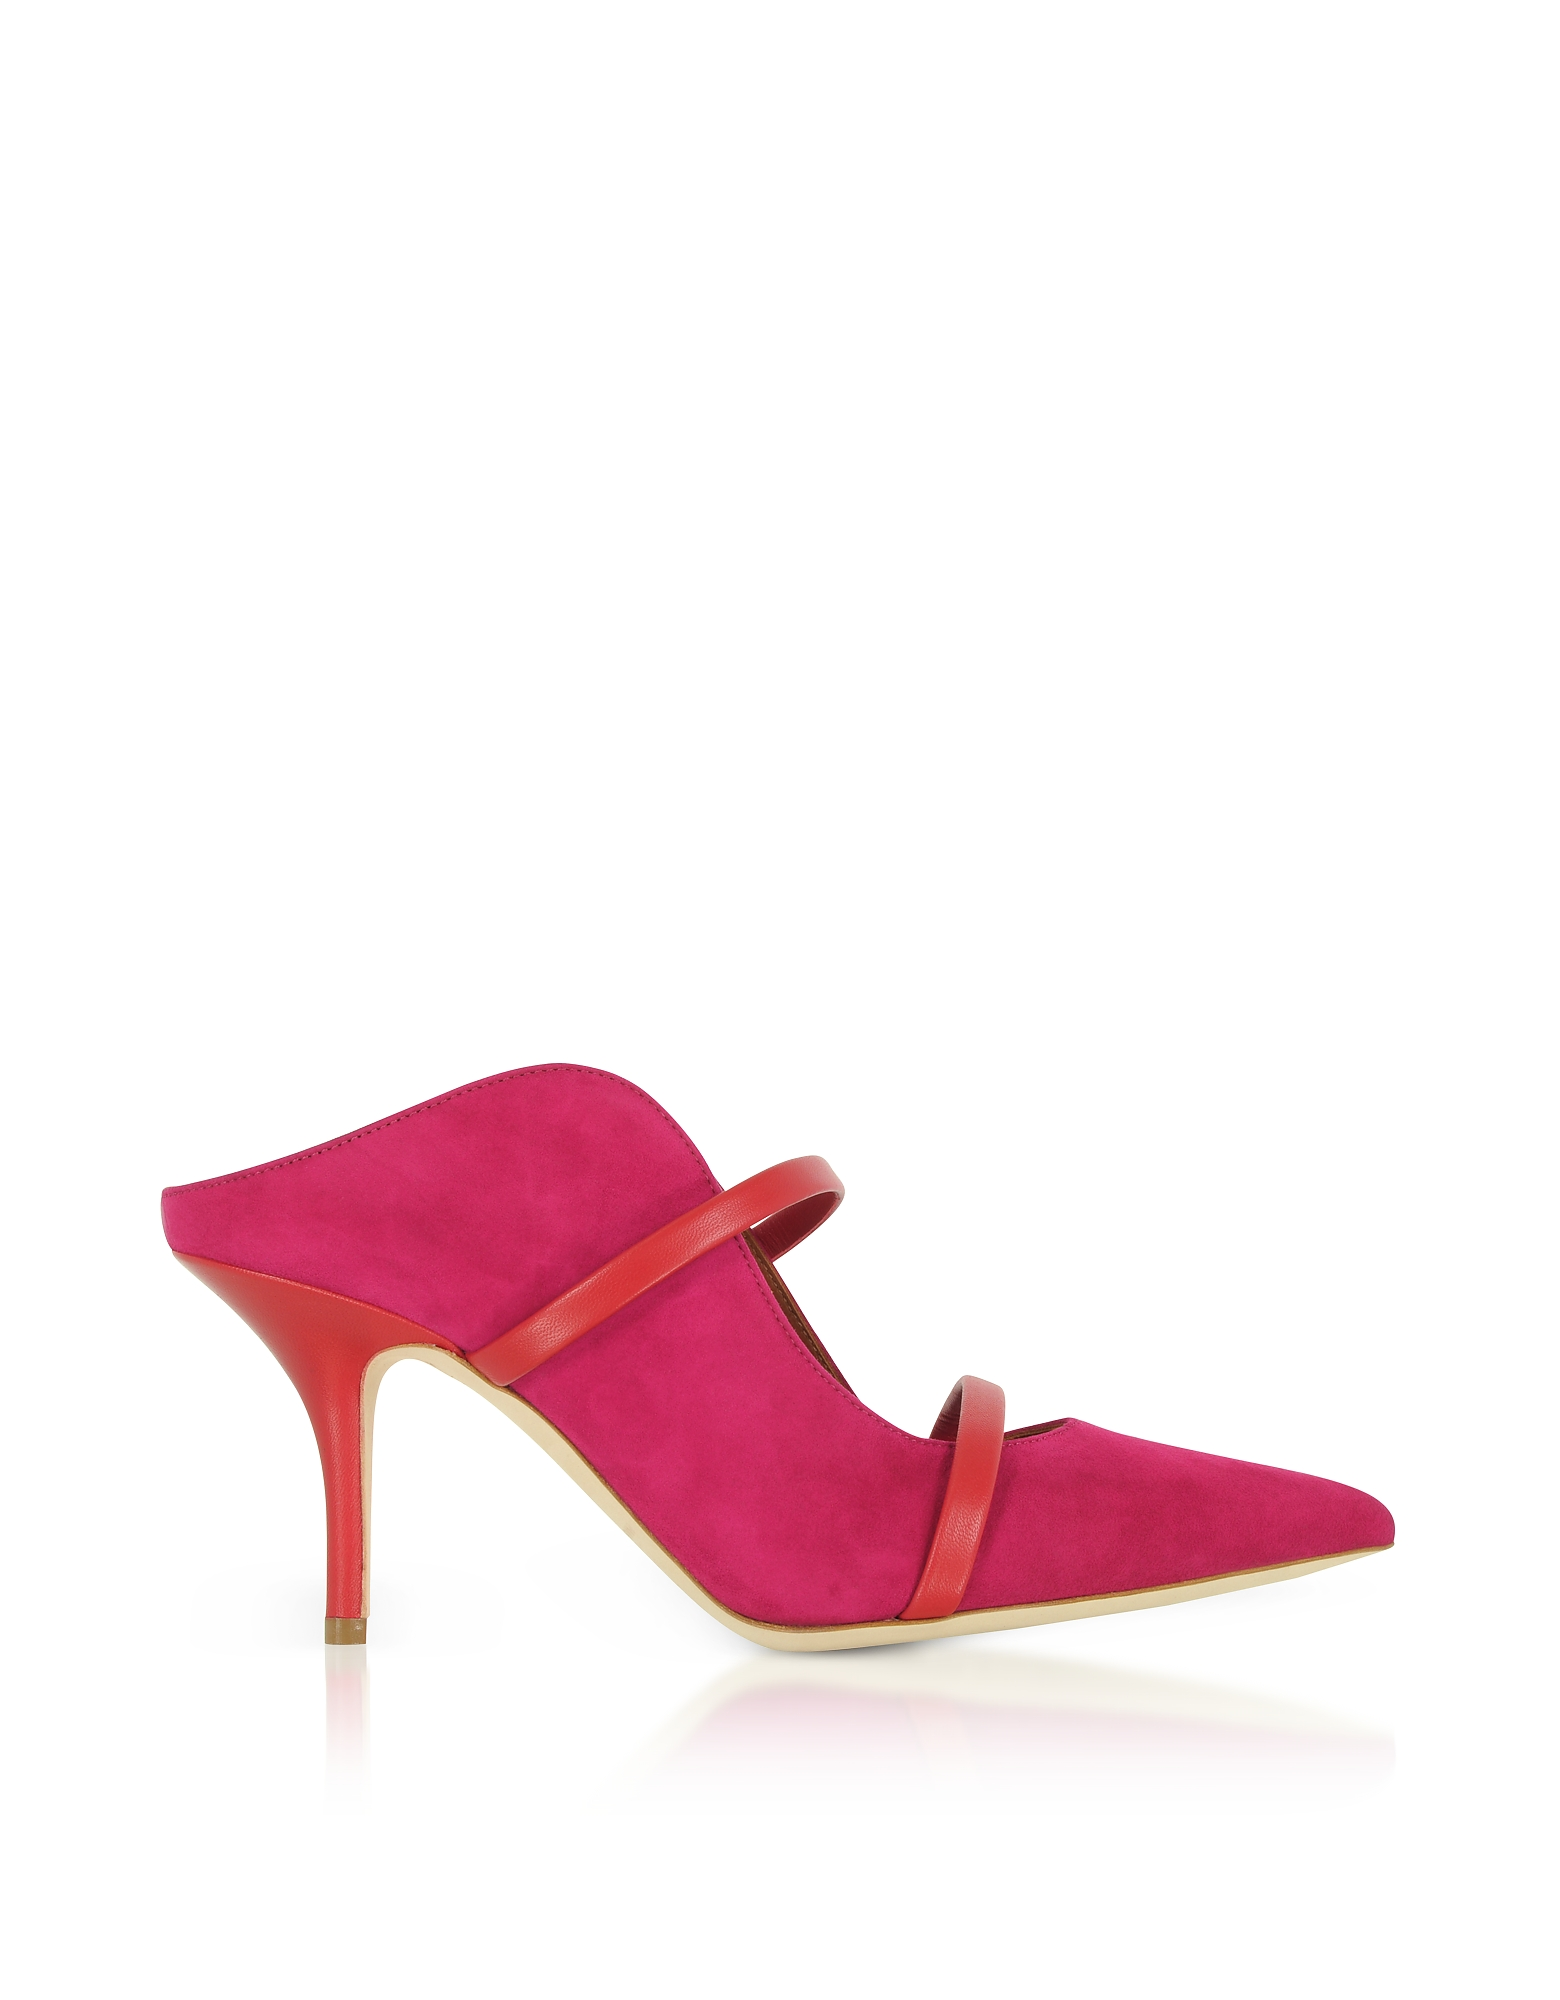 Maureen Red Suede and Cherry Nappa High Heel Mules